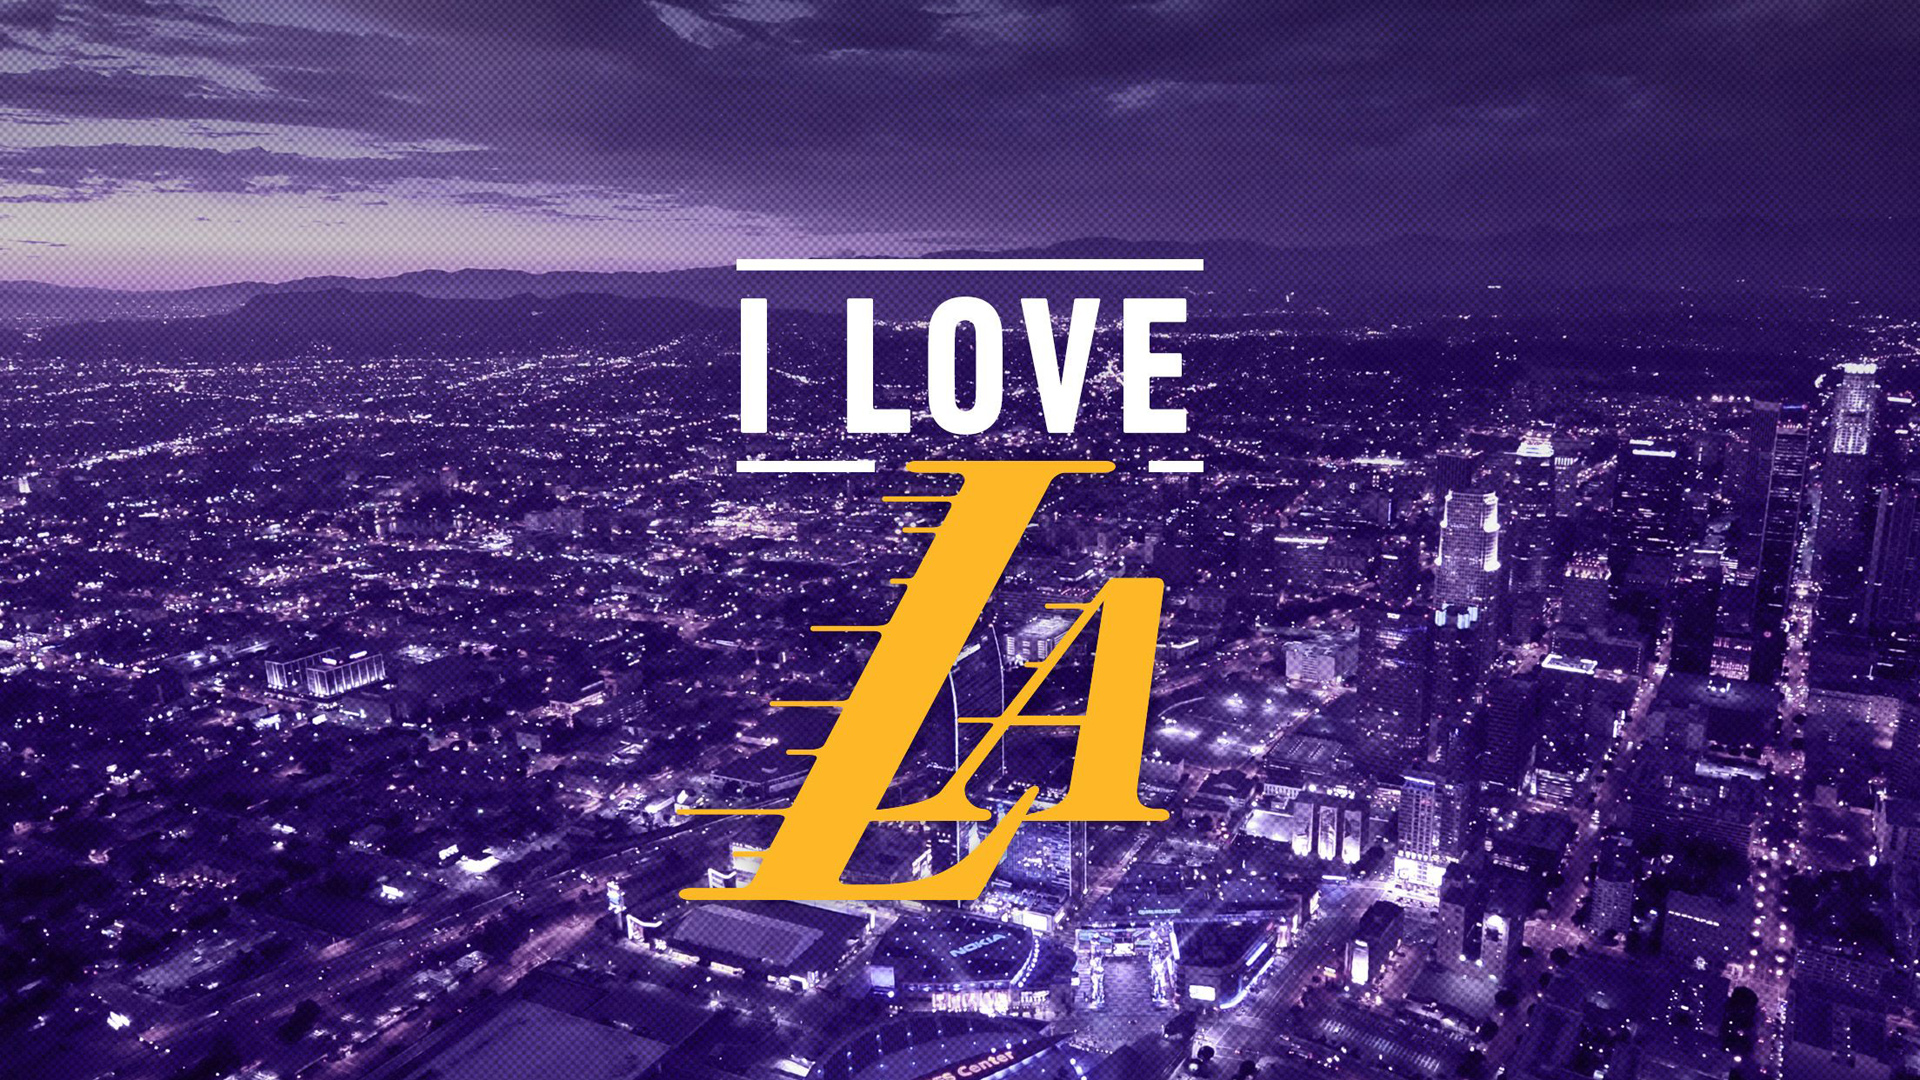 Download Lakers Logo In Purple City Background Basketball Hd Sports